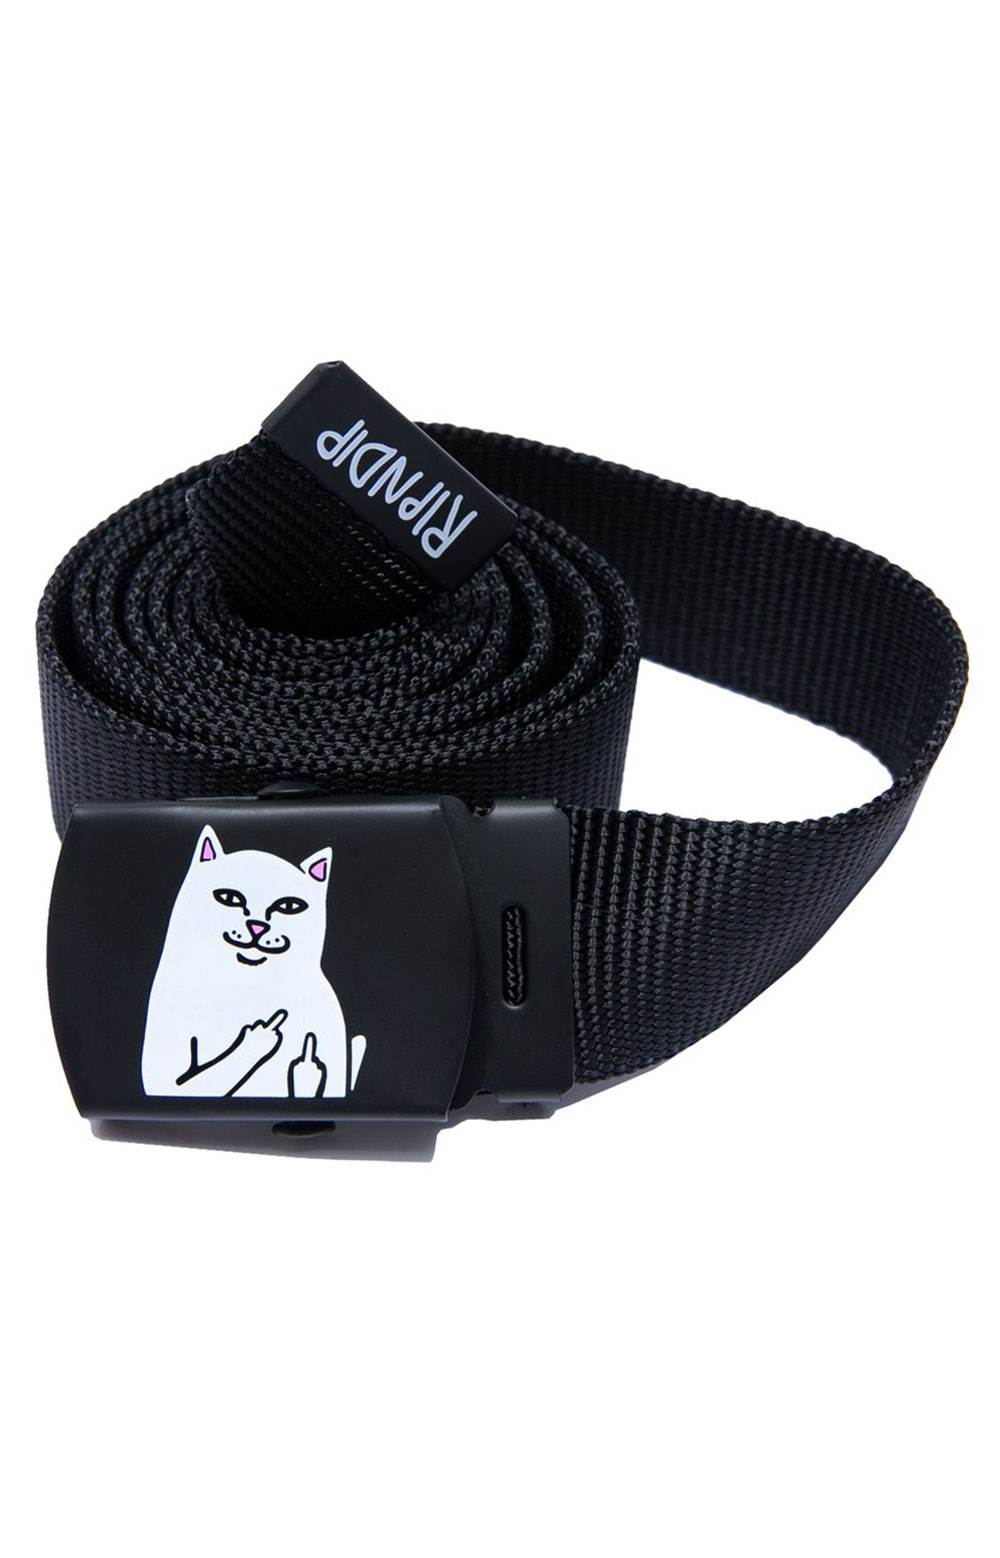 Lord Nermal Web Belt - Black